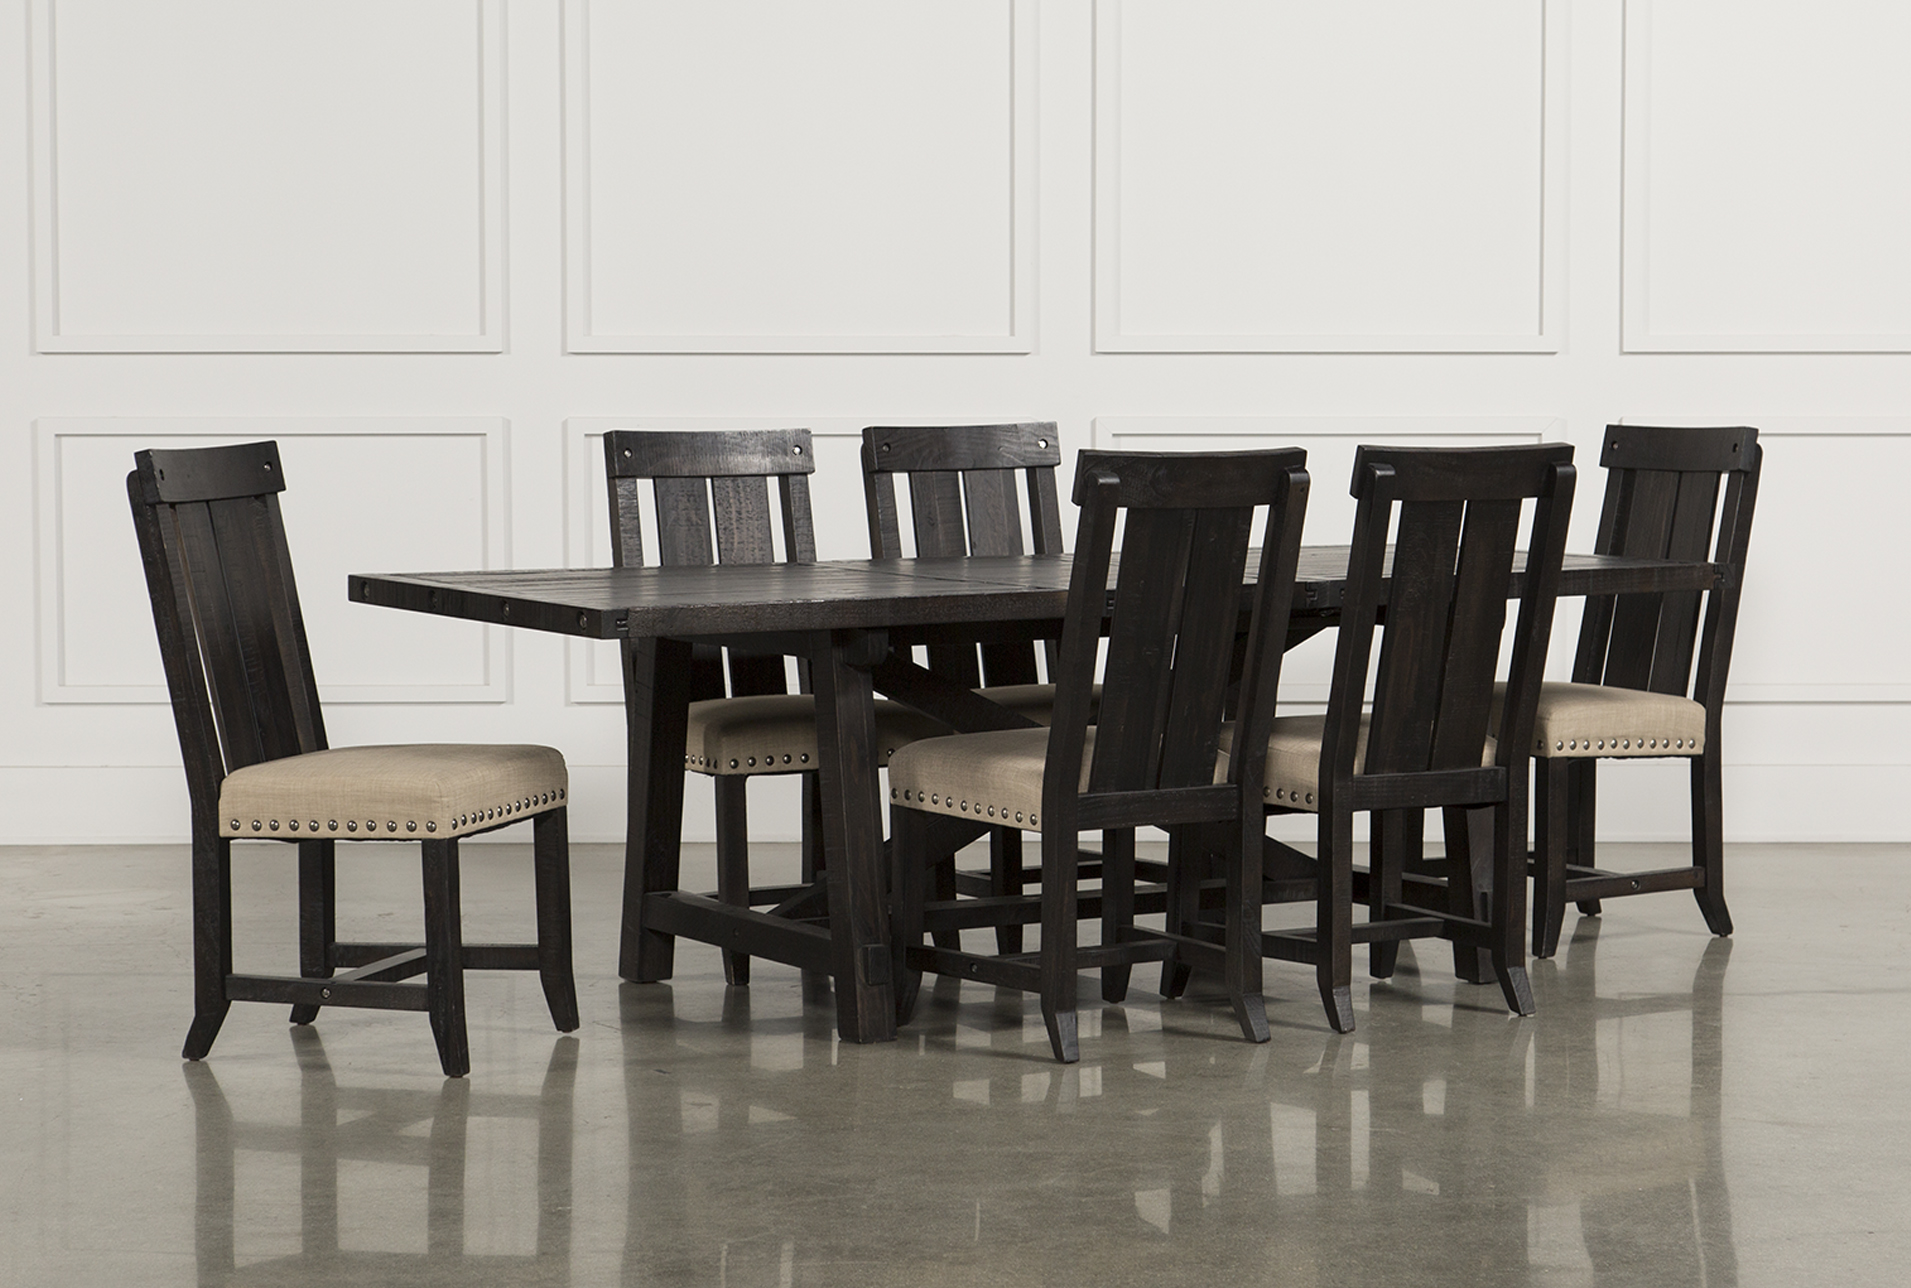 Jaxon 7 Piece Rectangle Dining Set W/Wood Chairs (Qty: 1) Has Been  Successfully Added To Your Cart.